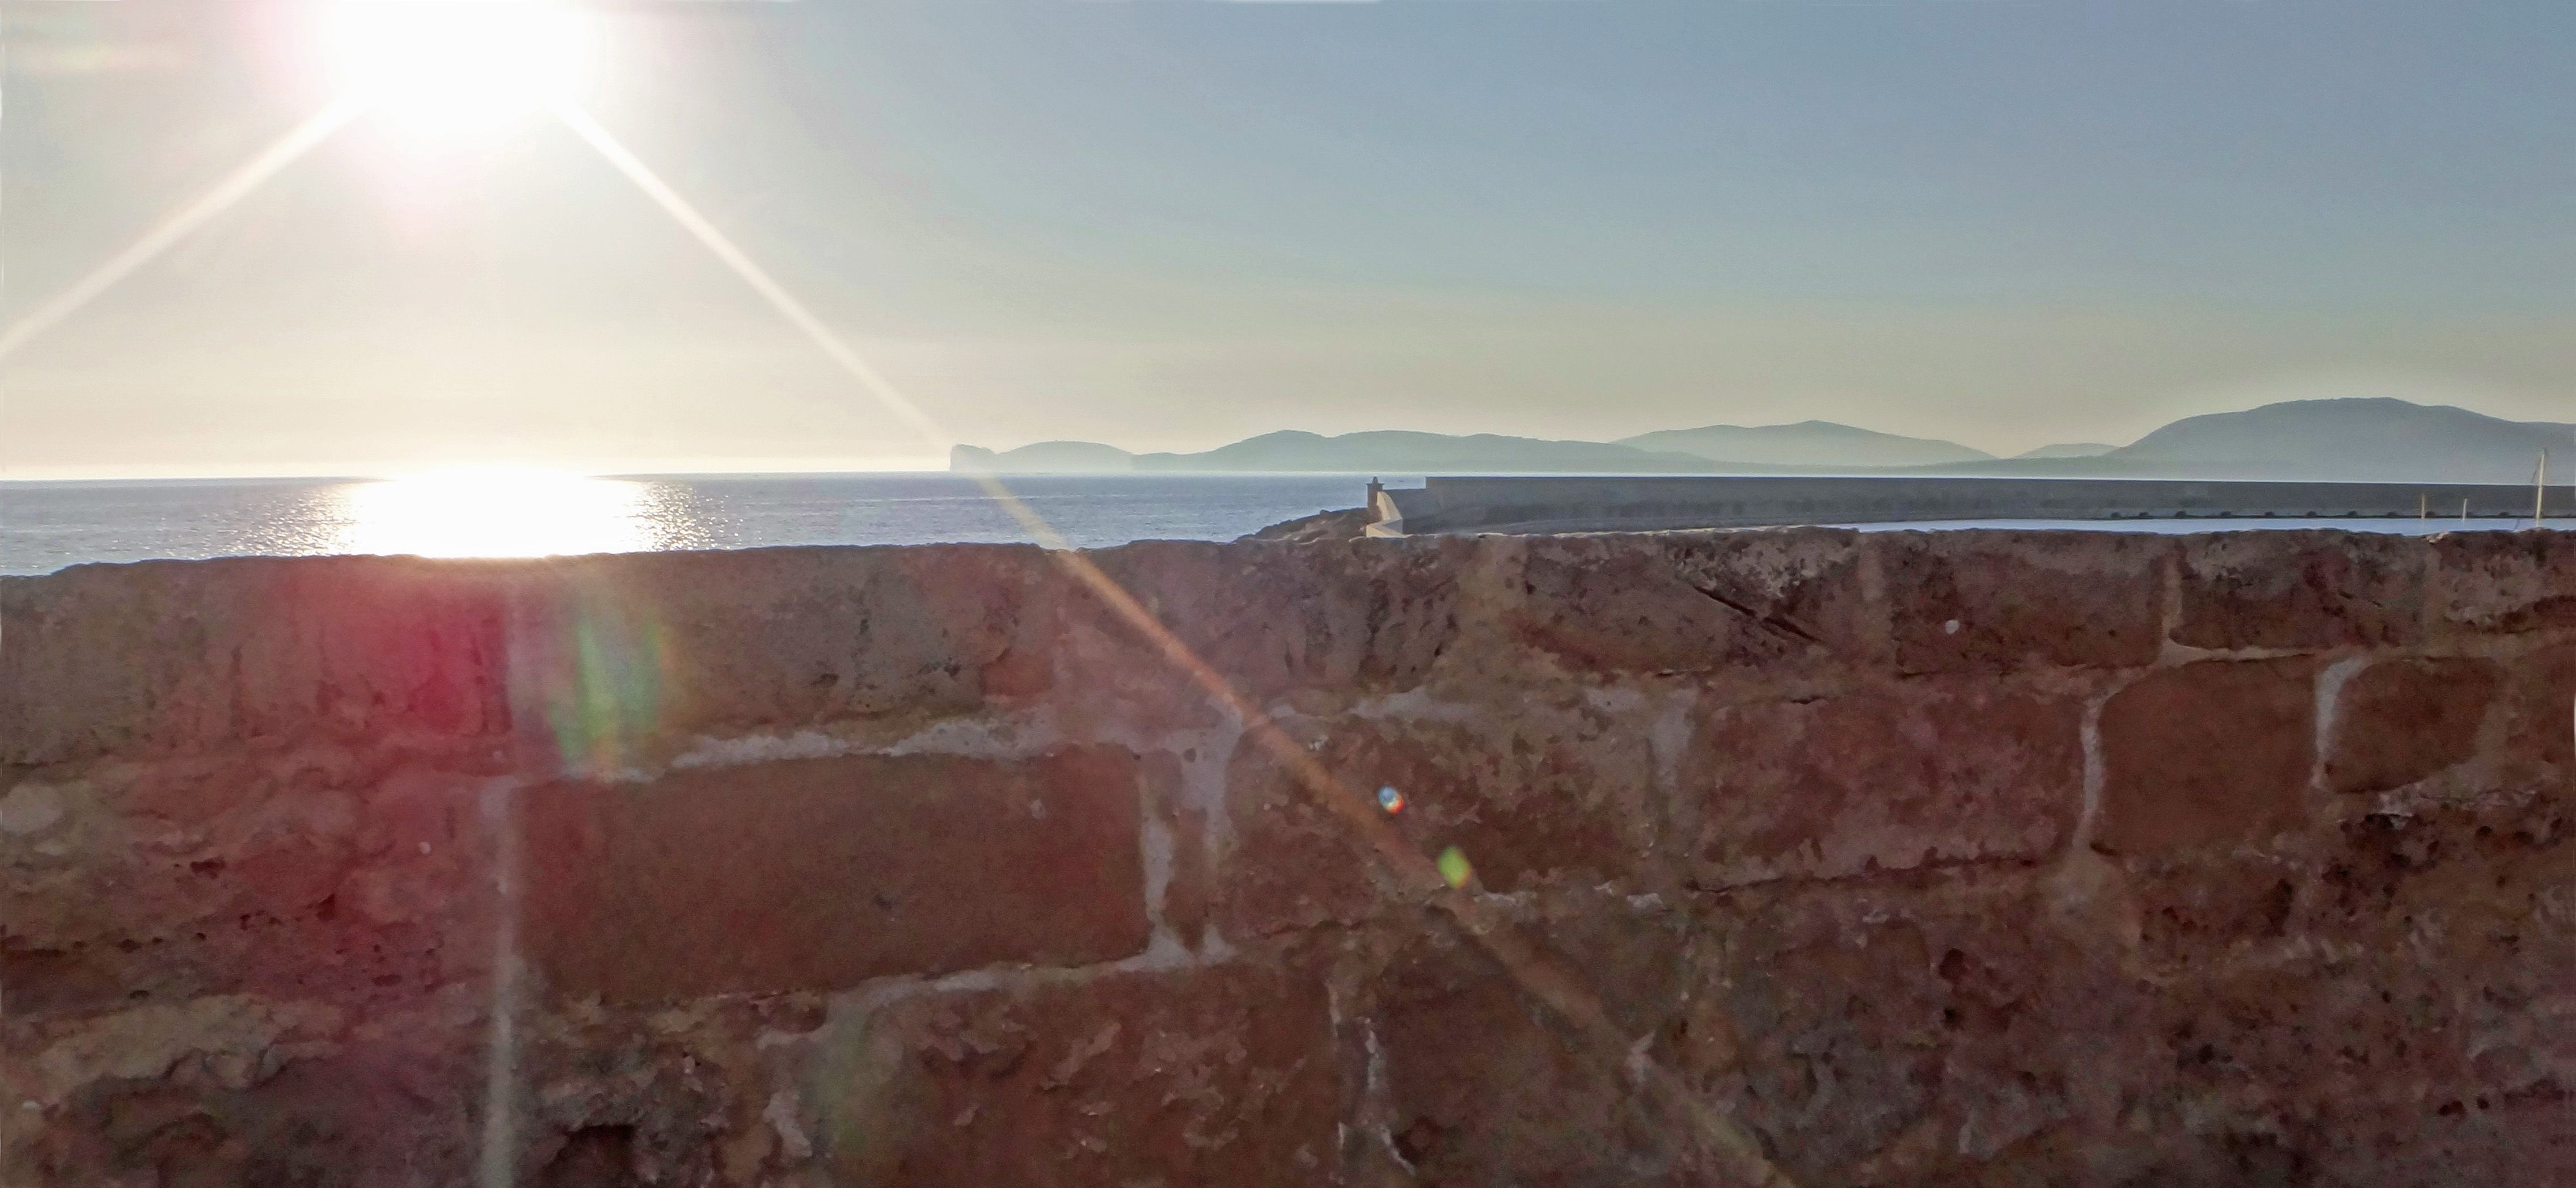 The sun climbs over the Alghero 's Bastions (built in 12th century by Doria) - Capo Caccia stands far, behind the pier. This is Sardinia.